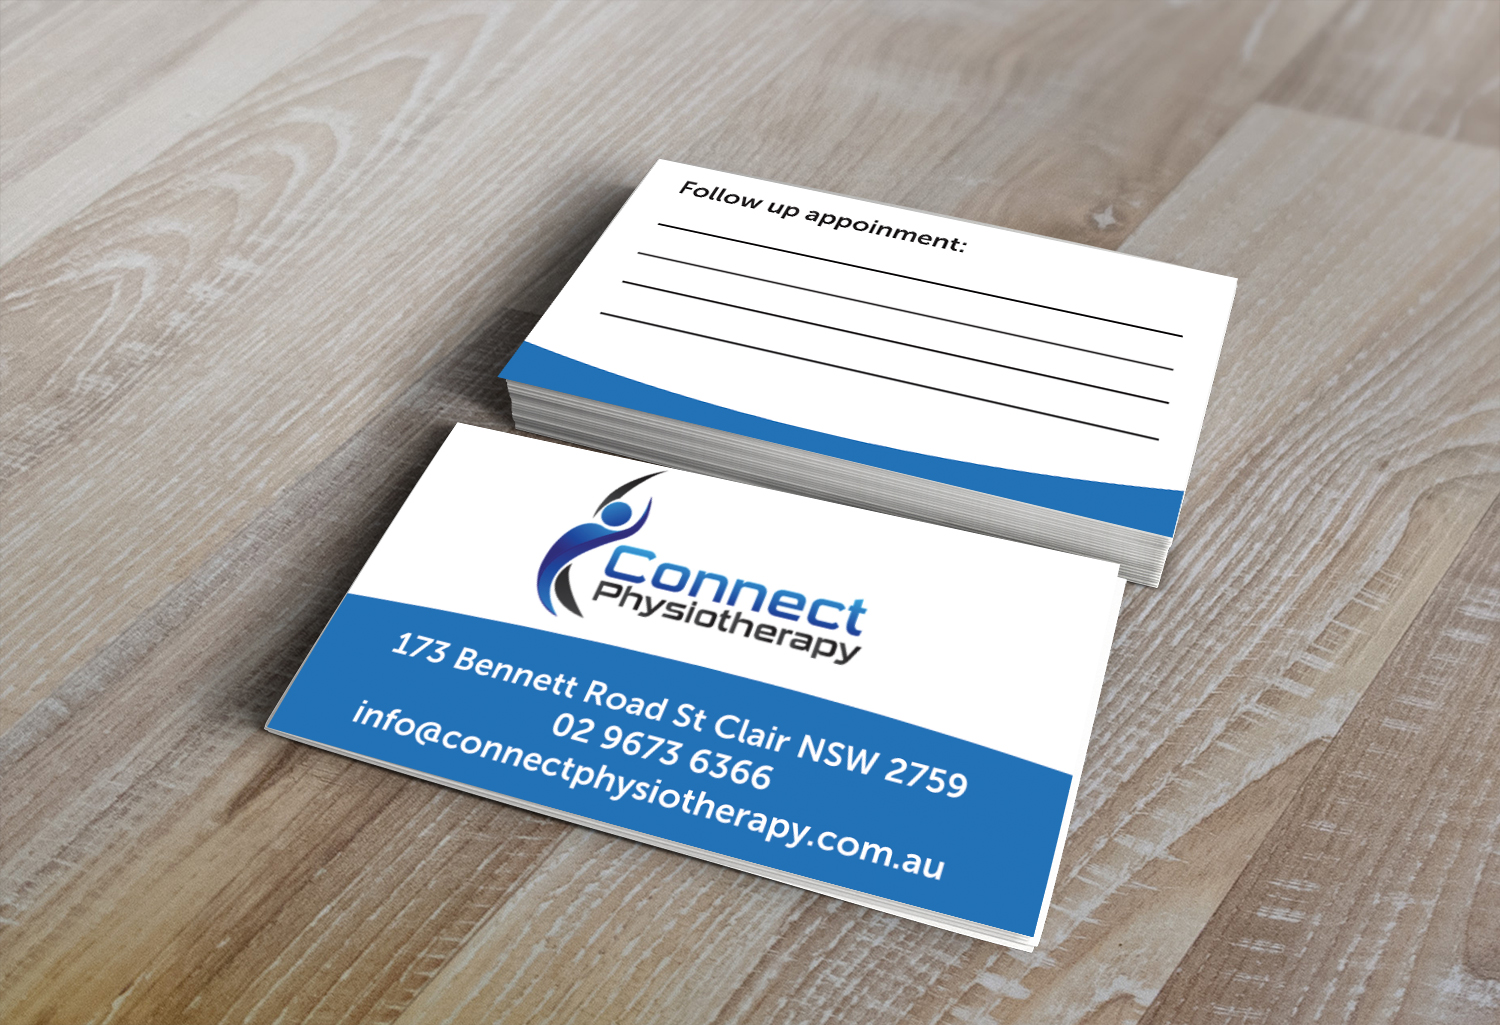 Modern professional business card design for david blackburn by business card design by speters designs for connect physiotherapy business card design design 10404875 reheart Image collections